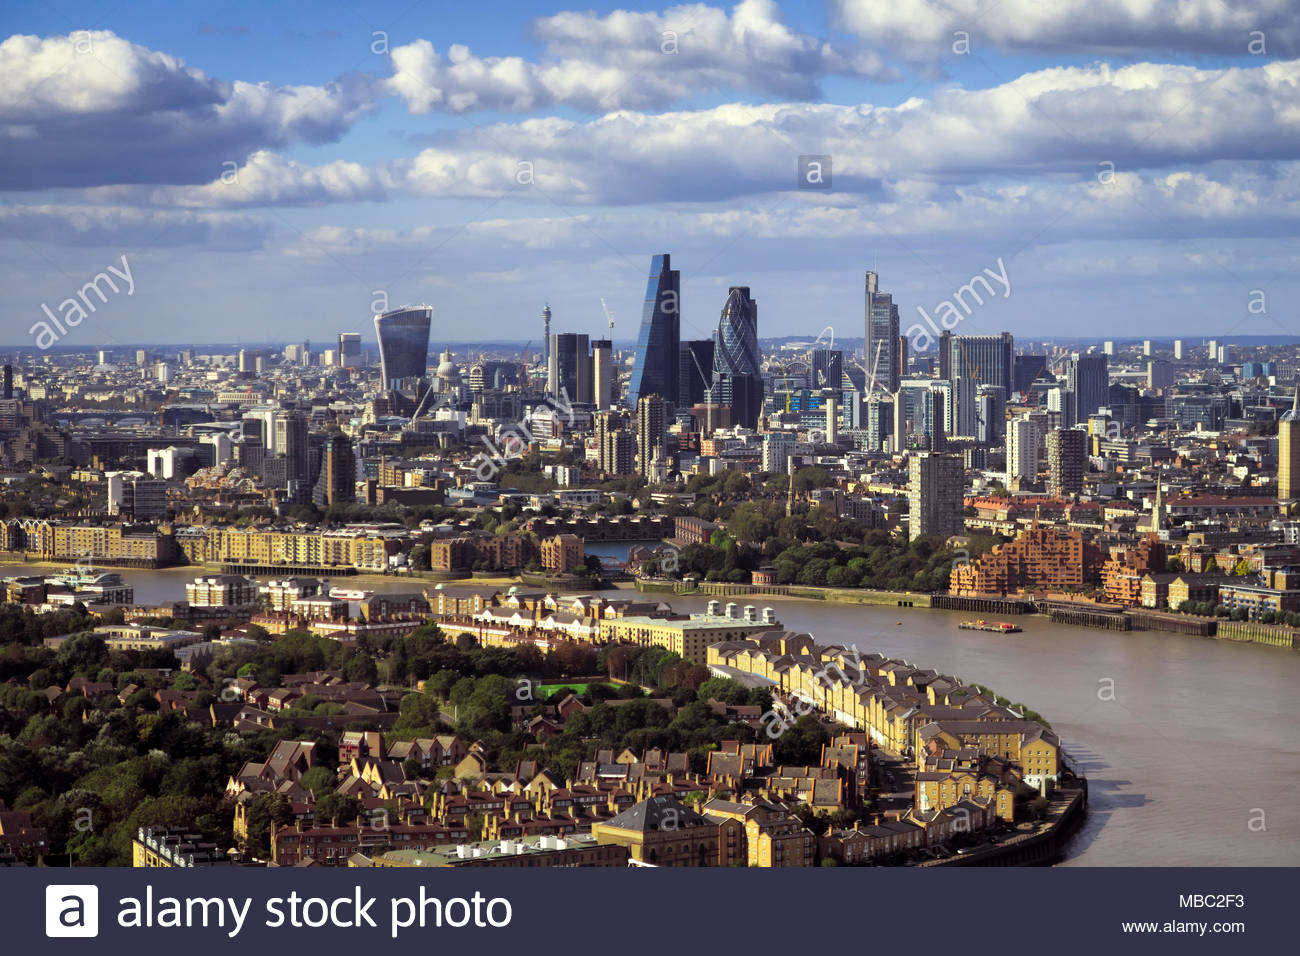 London view during sunny day with bank district, amazing skyscrapers and Thames river, United Kingdom - Stock Image